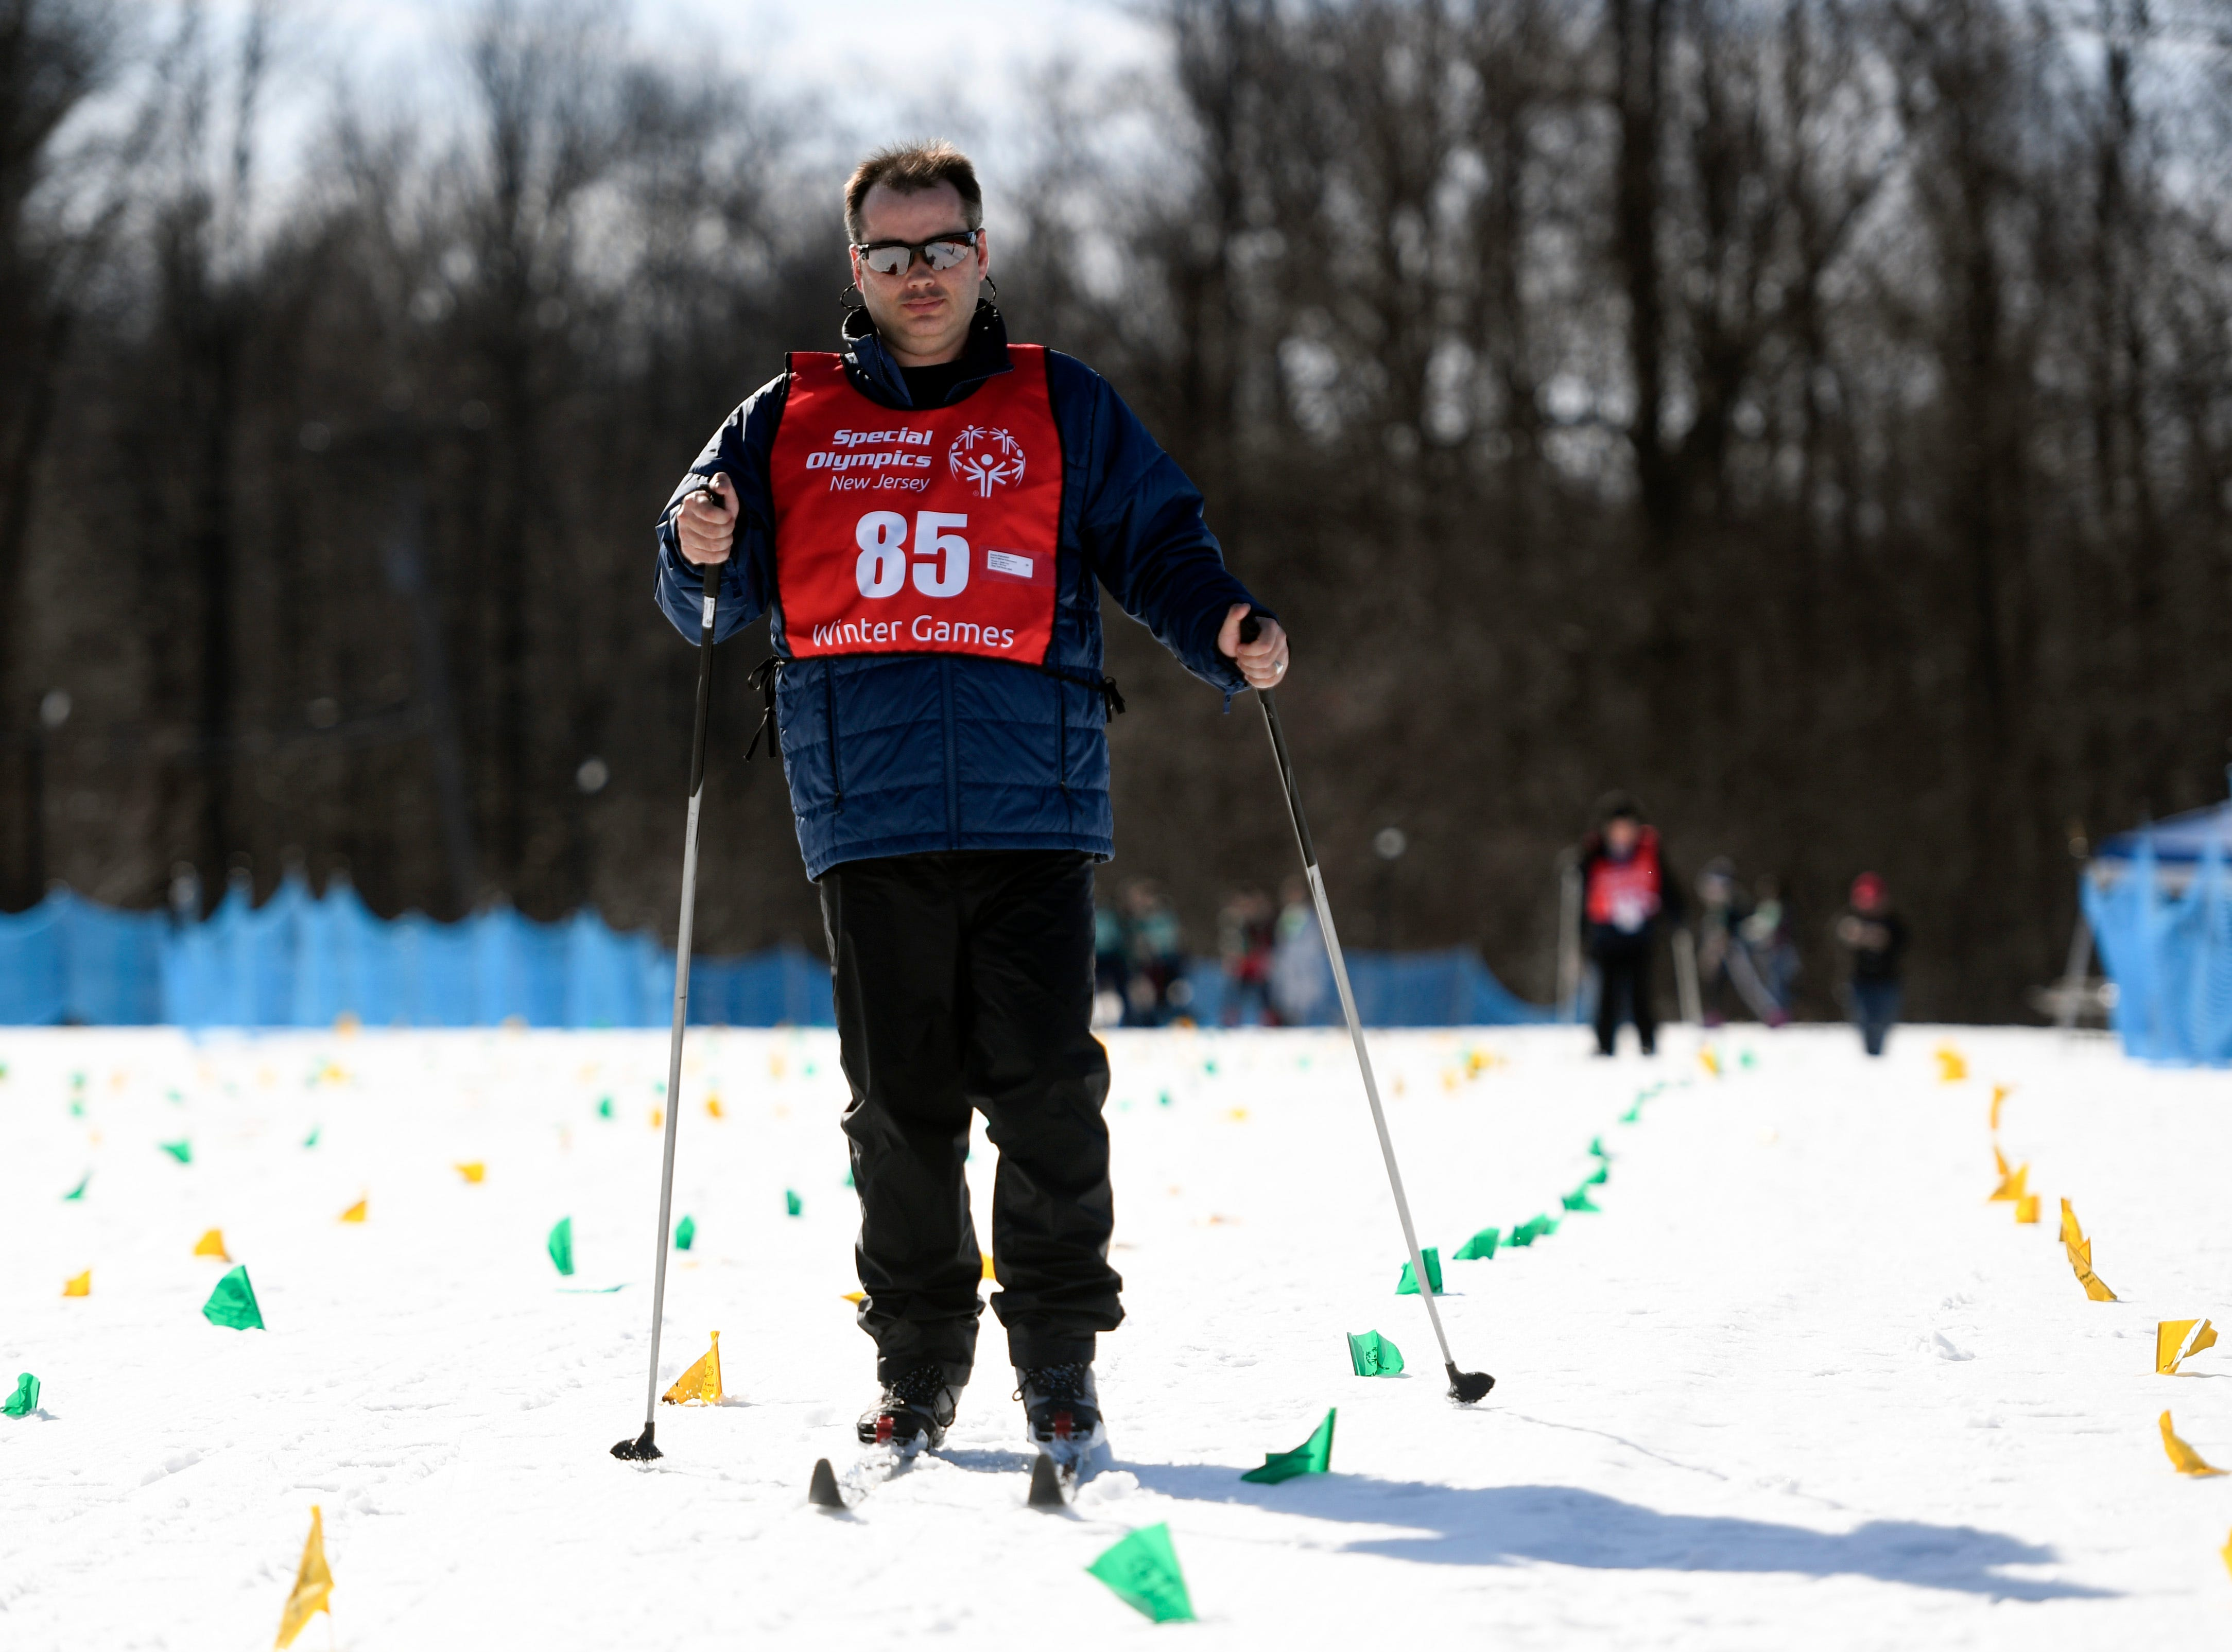 Kevin Petranich of Lawrenceville finishes the 1K cross-country skiing final during the Special Olympics New Jersey 2019 Winter Games on Tuesday, Feb. 5, 2019, in Vernon.